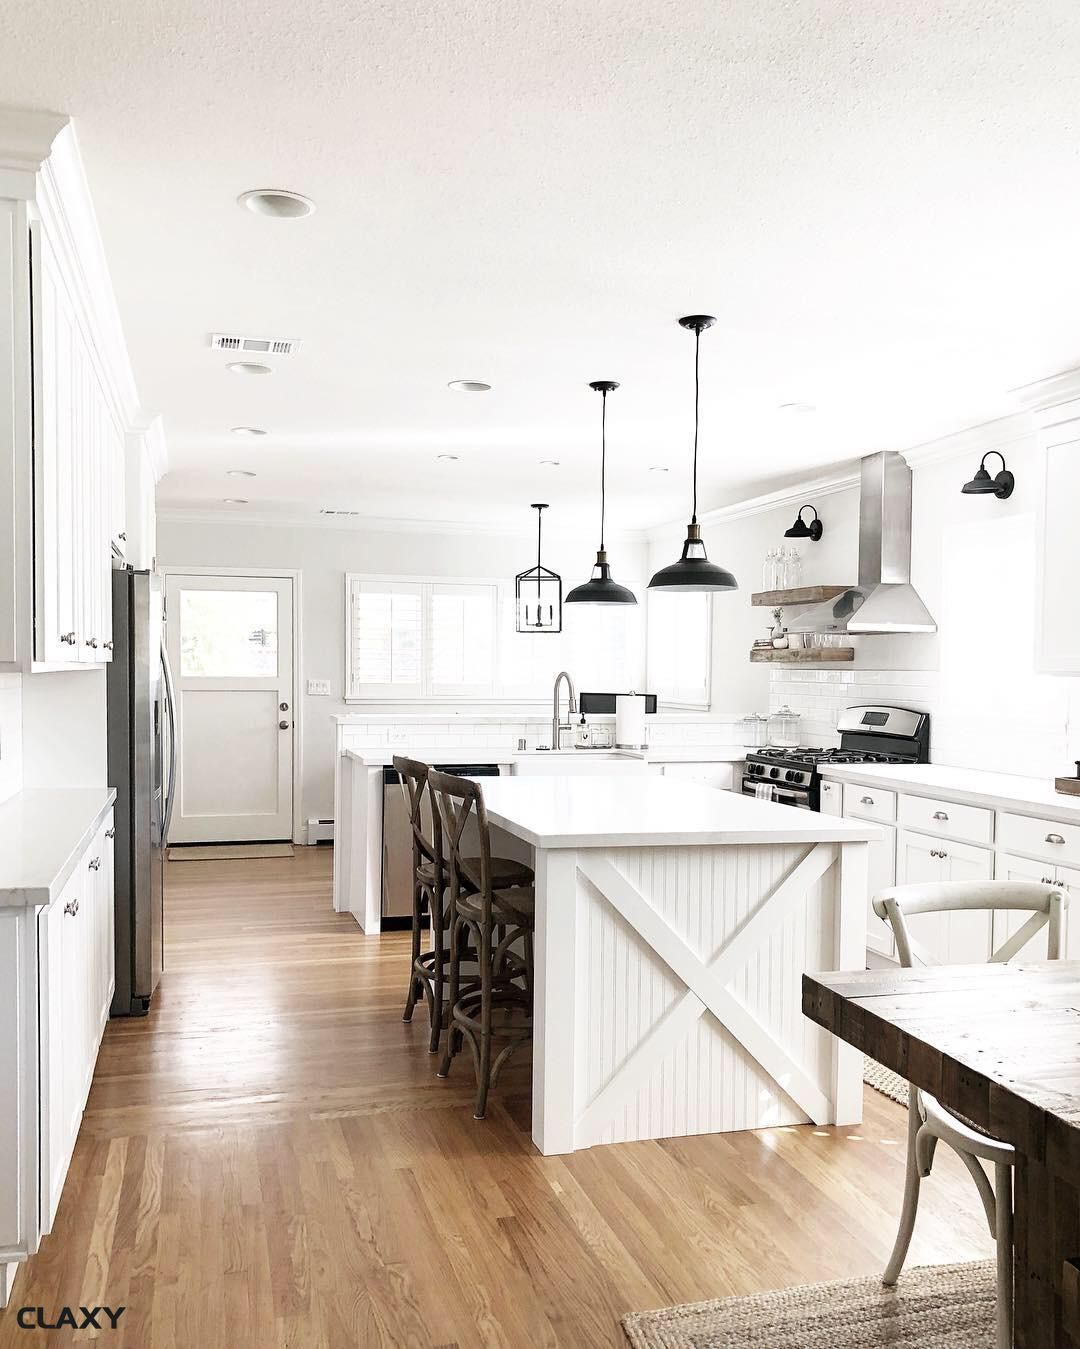 10 designs perfect for your small kitchen modern farmhouse kitchens farmhouse style kitchen on kitchen island ideas modern farmhouse id=29146